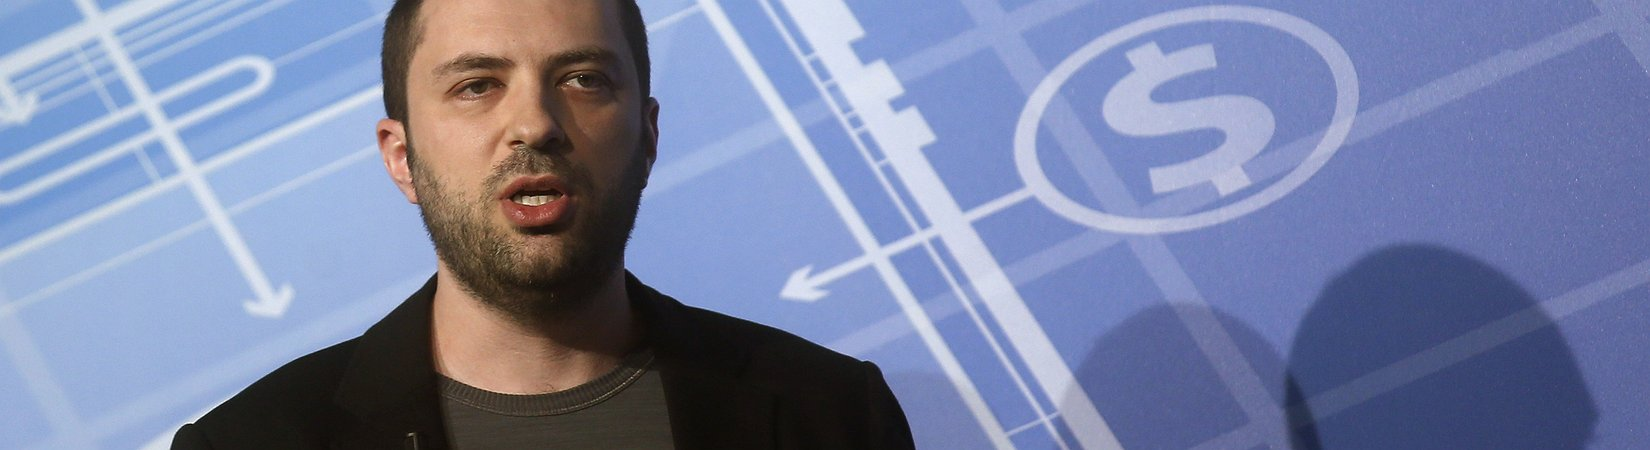 WhatsApp founder sells and gives away more than $5b of Facebook stock